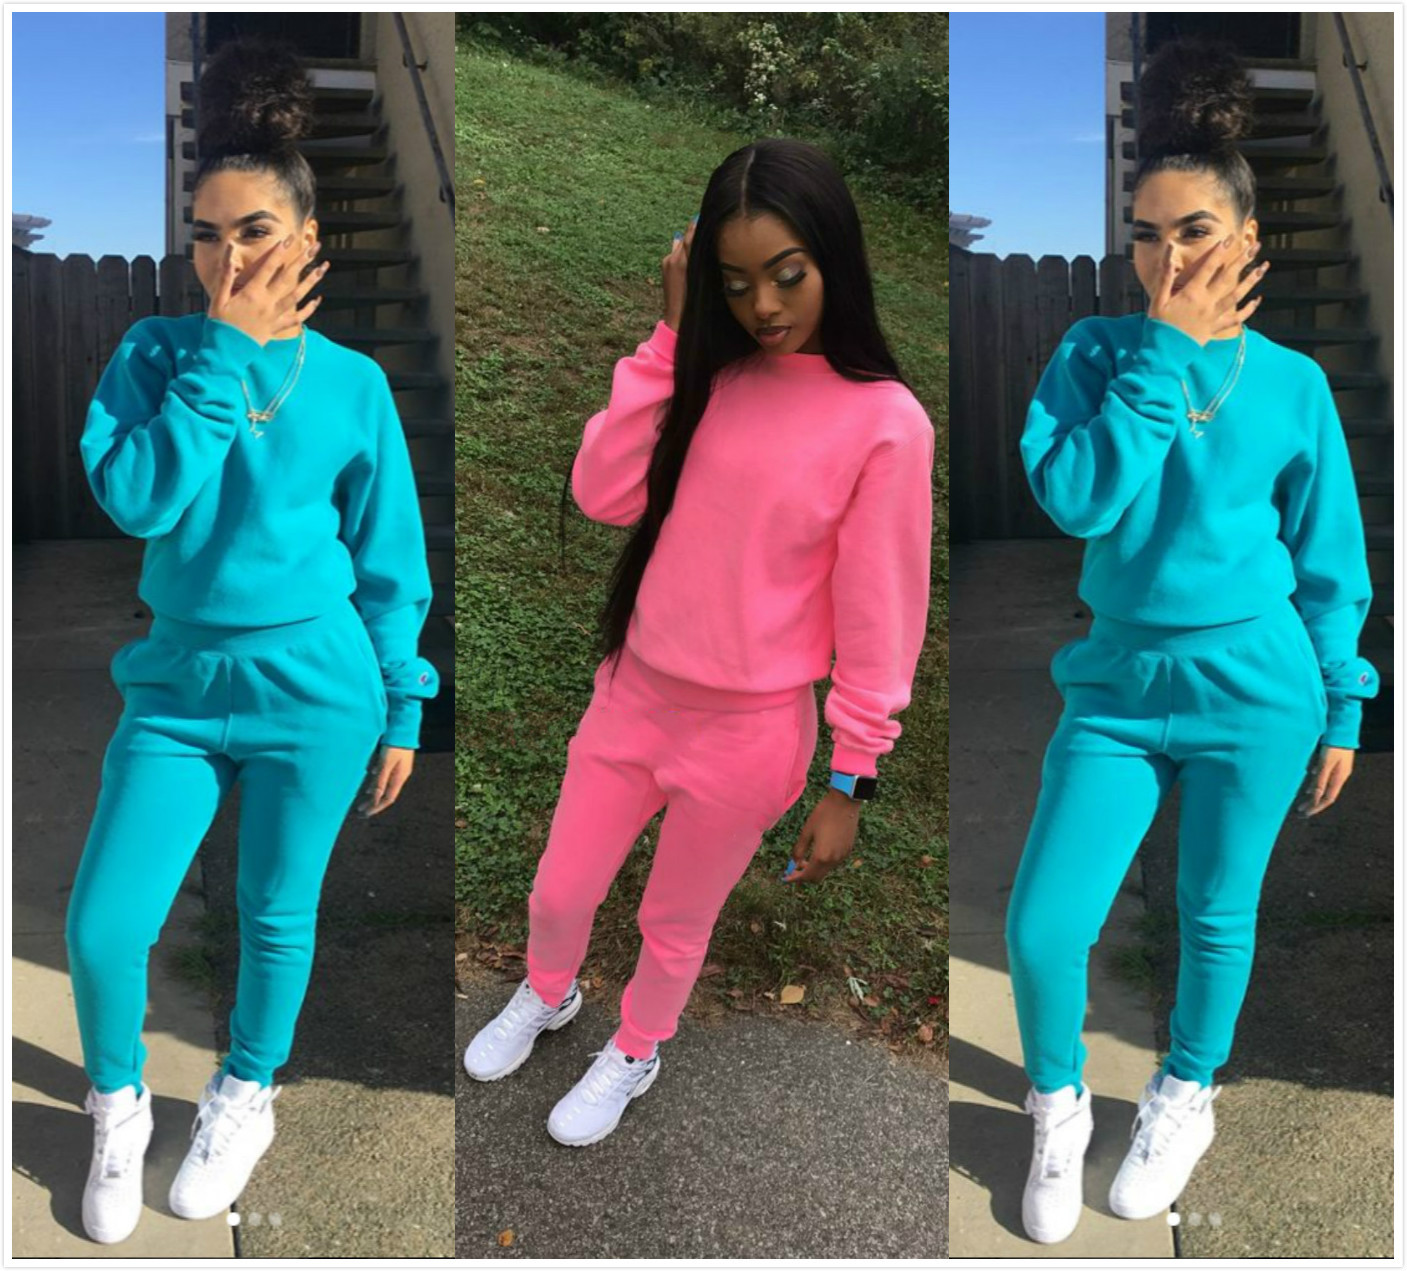 2019 New Autumn And Winter New Fleece Women's Sports And Leisure Suit  Women's Sets   2 Piece Tracksuit